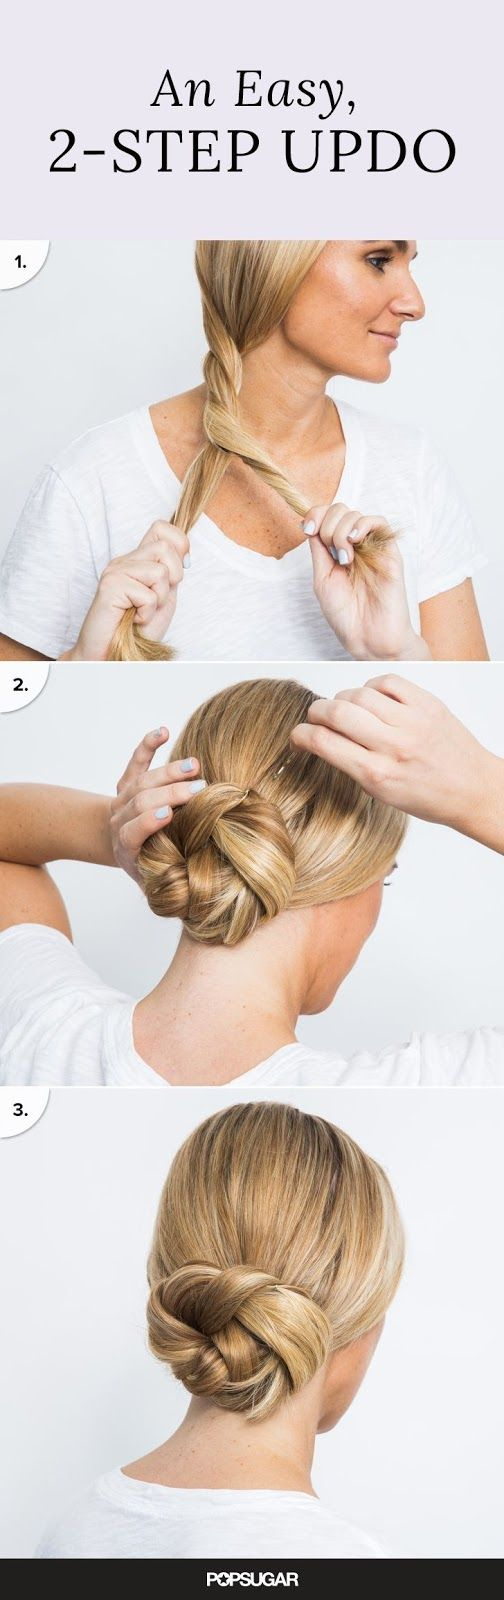 Updo u coiffures cute pinterest updo easy hairstyles and school